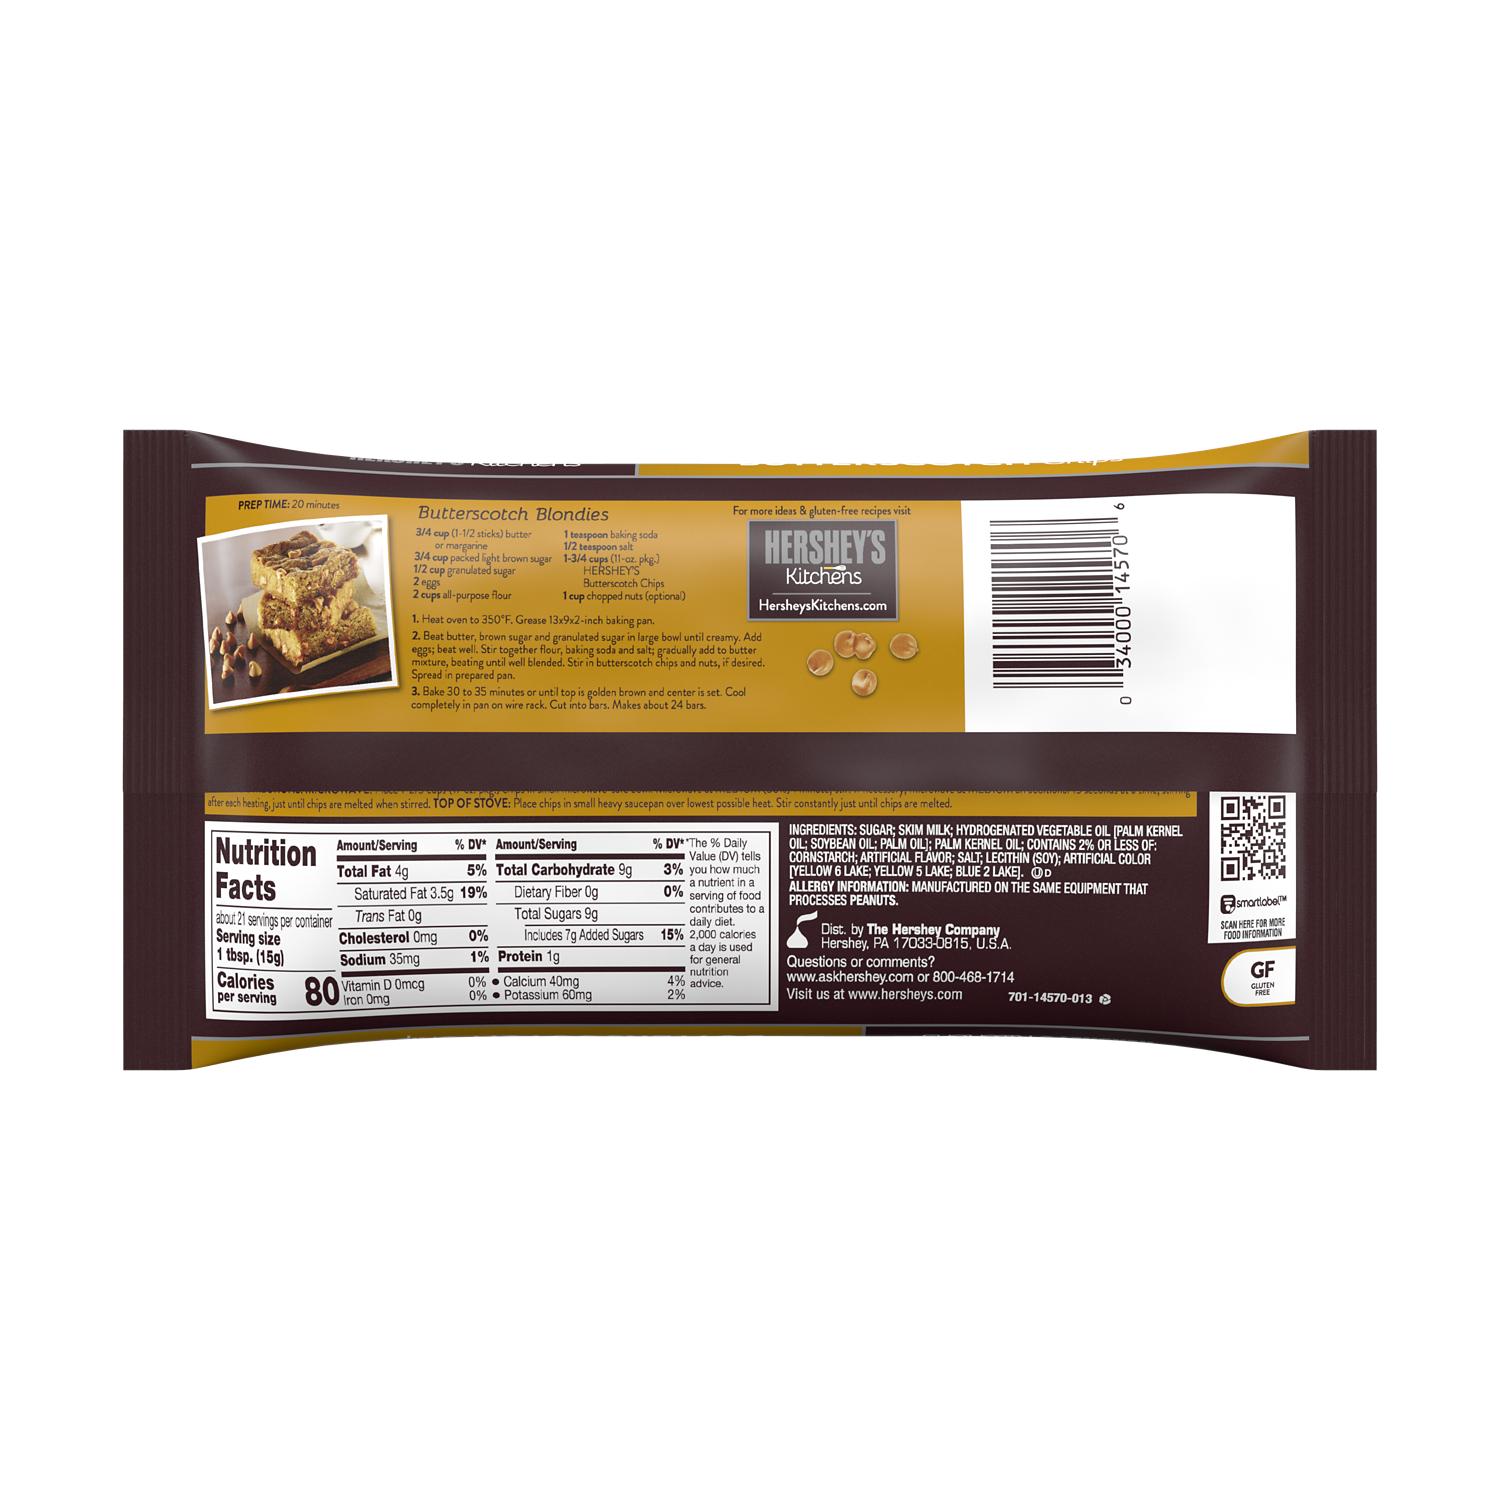 HERSHEY'S Butterscotch Chips, 11 oz bag - Back of Package